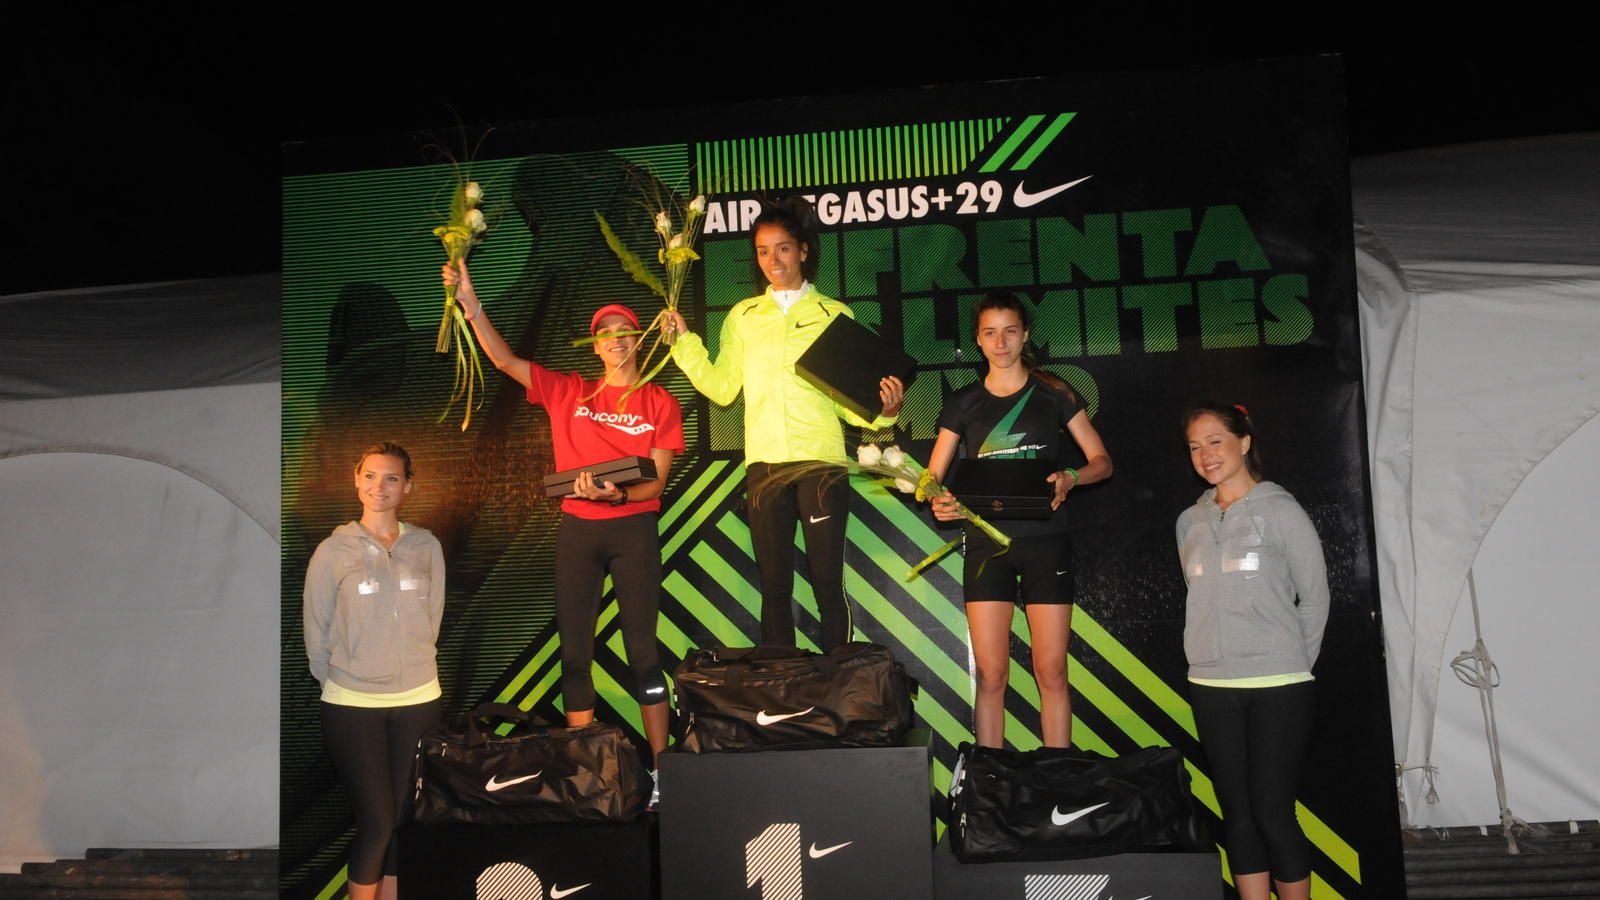 pasajero Soplar Digno  Montevideo attracts almost 10,000 runners in Nike's first-ever night race  in Uruguay - Nike News